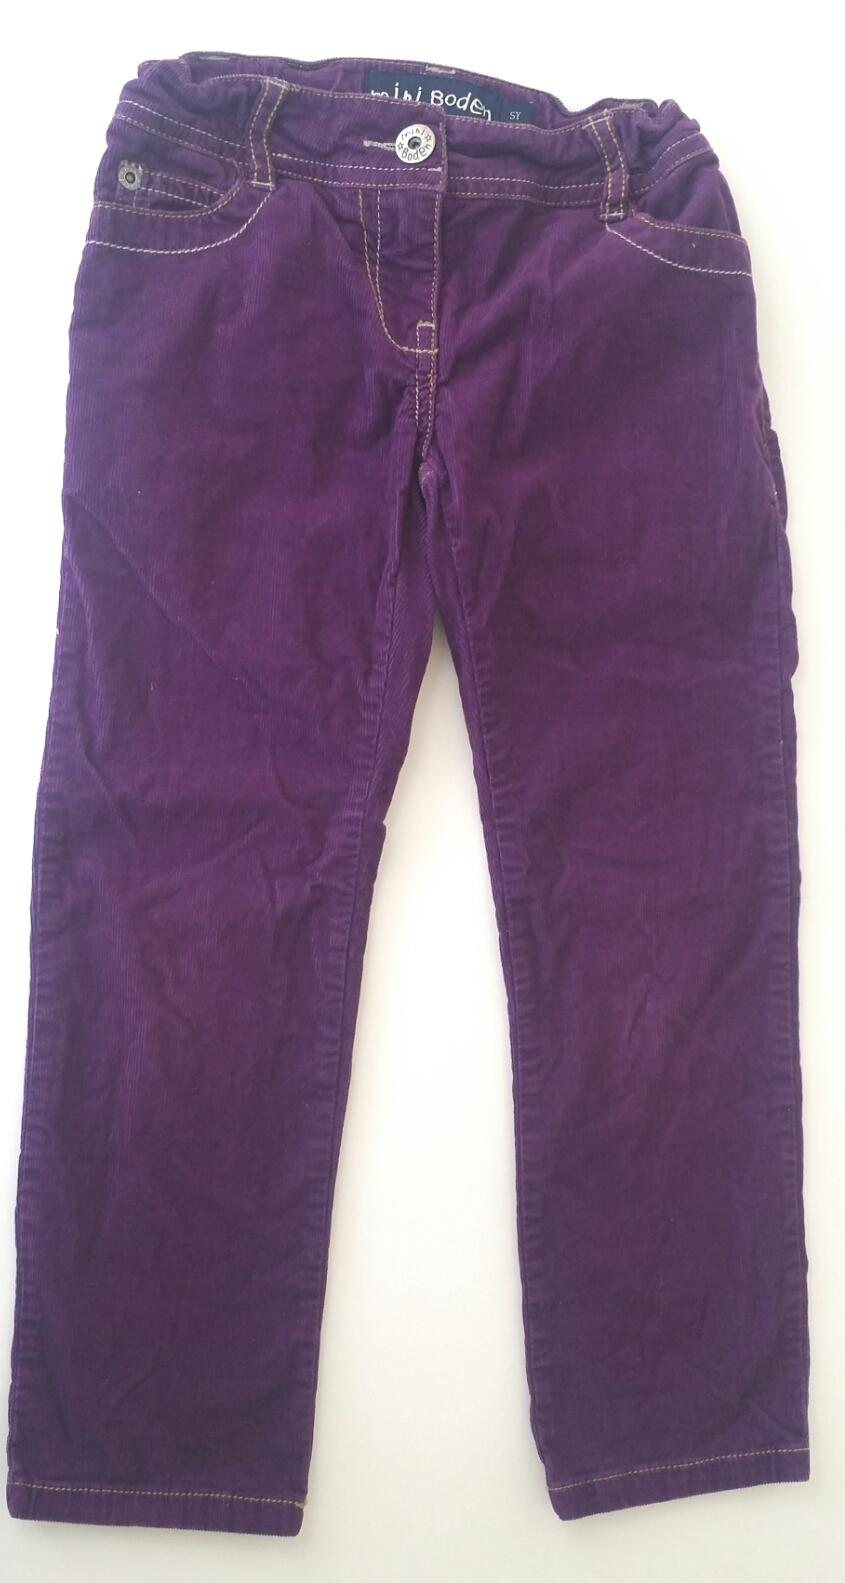 782784a3c734d Mini Boden 5 YEARS Corduroy Pants | Chloe's Closet